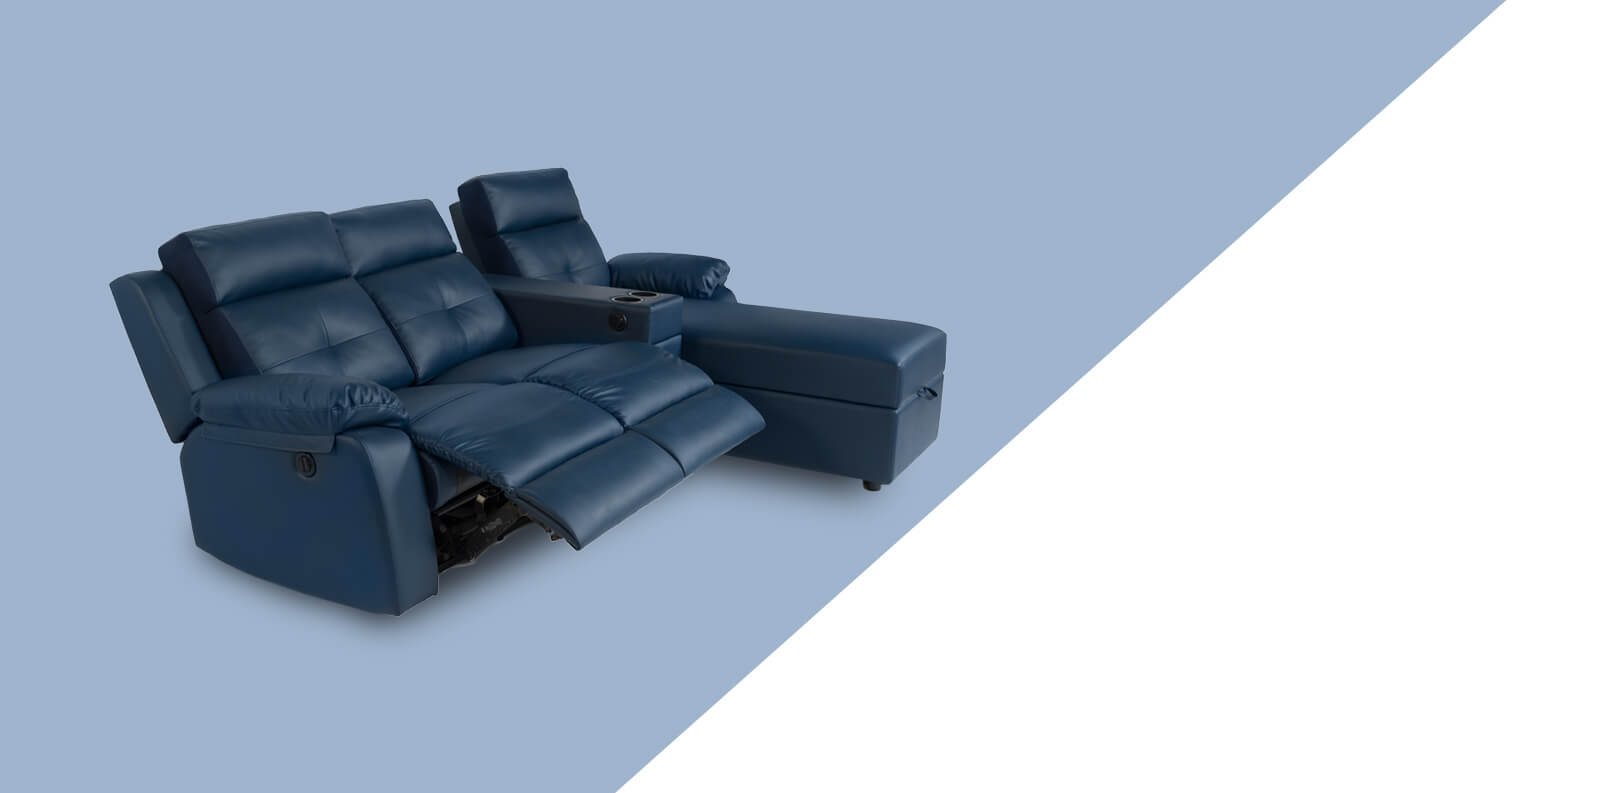 Recliner Sofa Kirti Nagar Recliners India Buy Recliner Sofa Chair From Manufacturer At